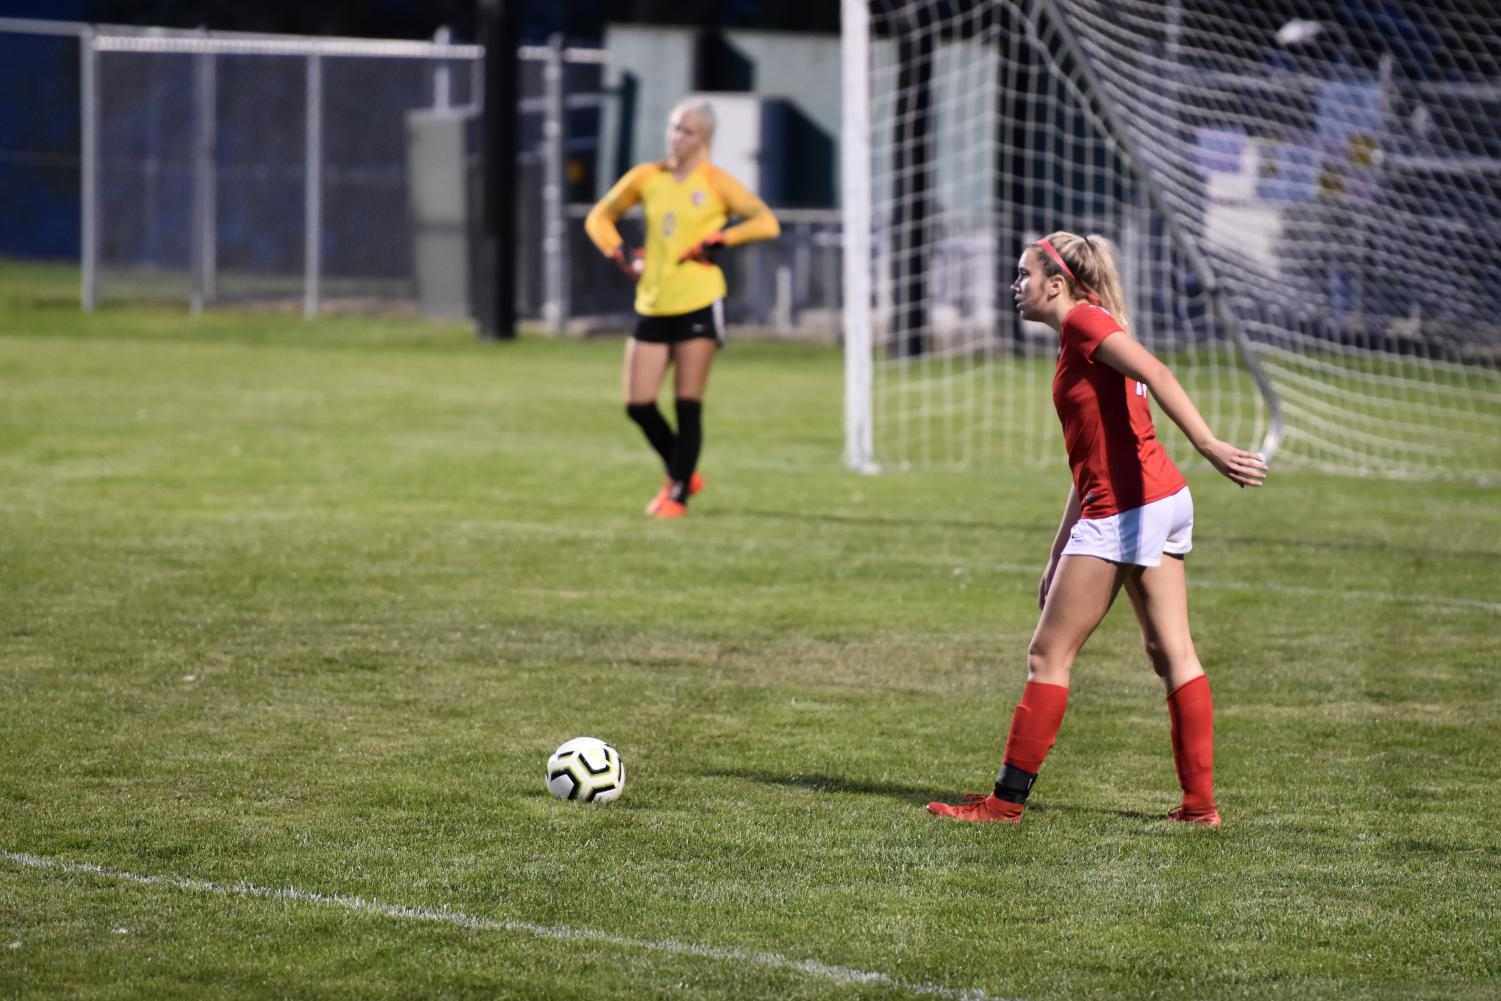 Sophomore+Emma+Thielbahr+looks+to+send+a+free+kick+up+the+field+shortly+after+Lake+City+scores+their+last+and+final+goal%2C+resulting+in+a+0-3+Sandpoint+loss.+